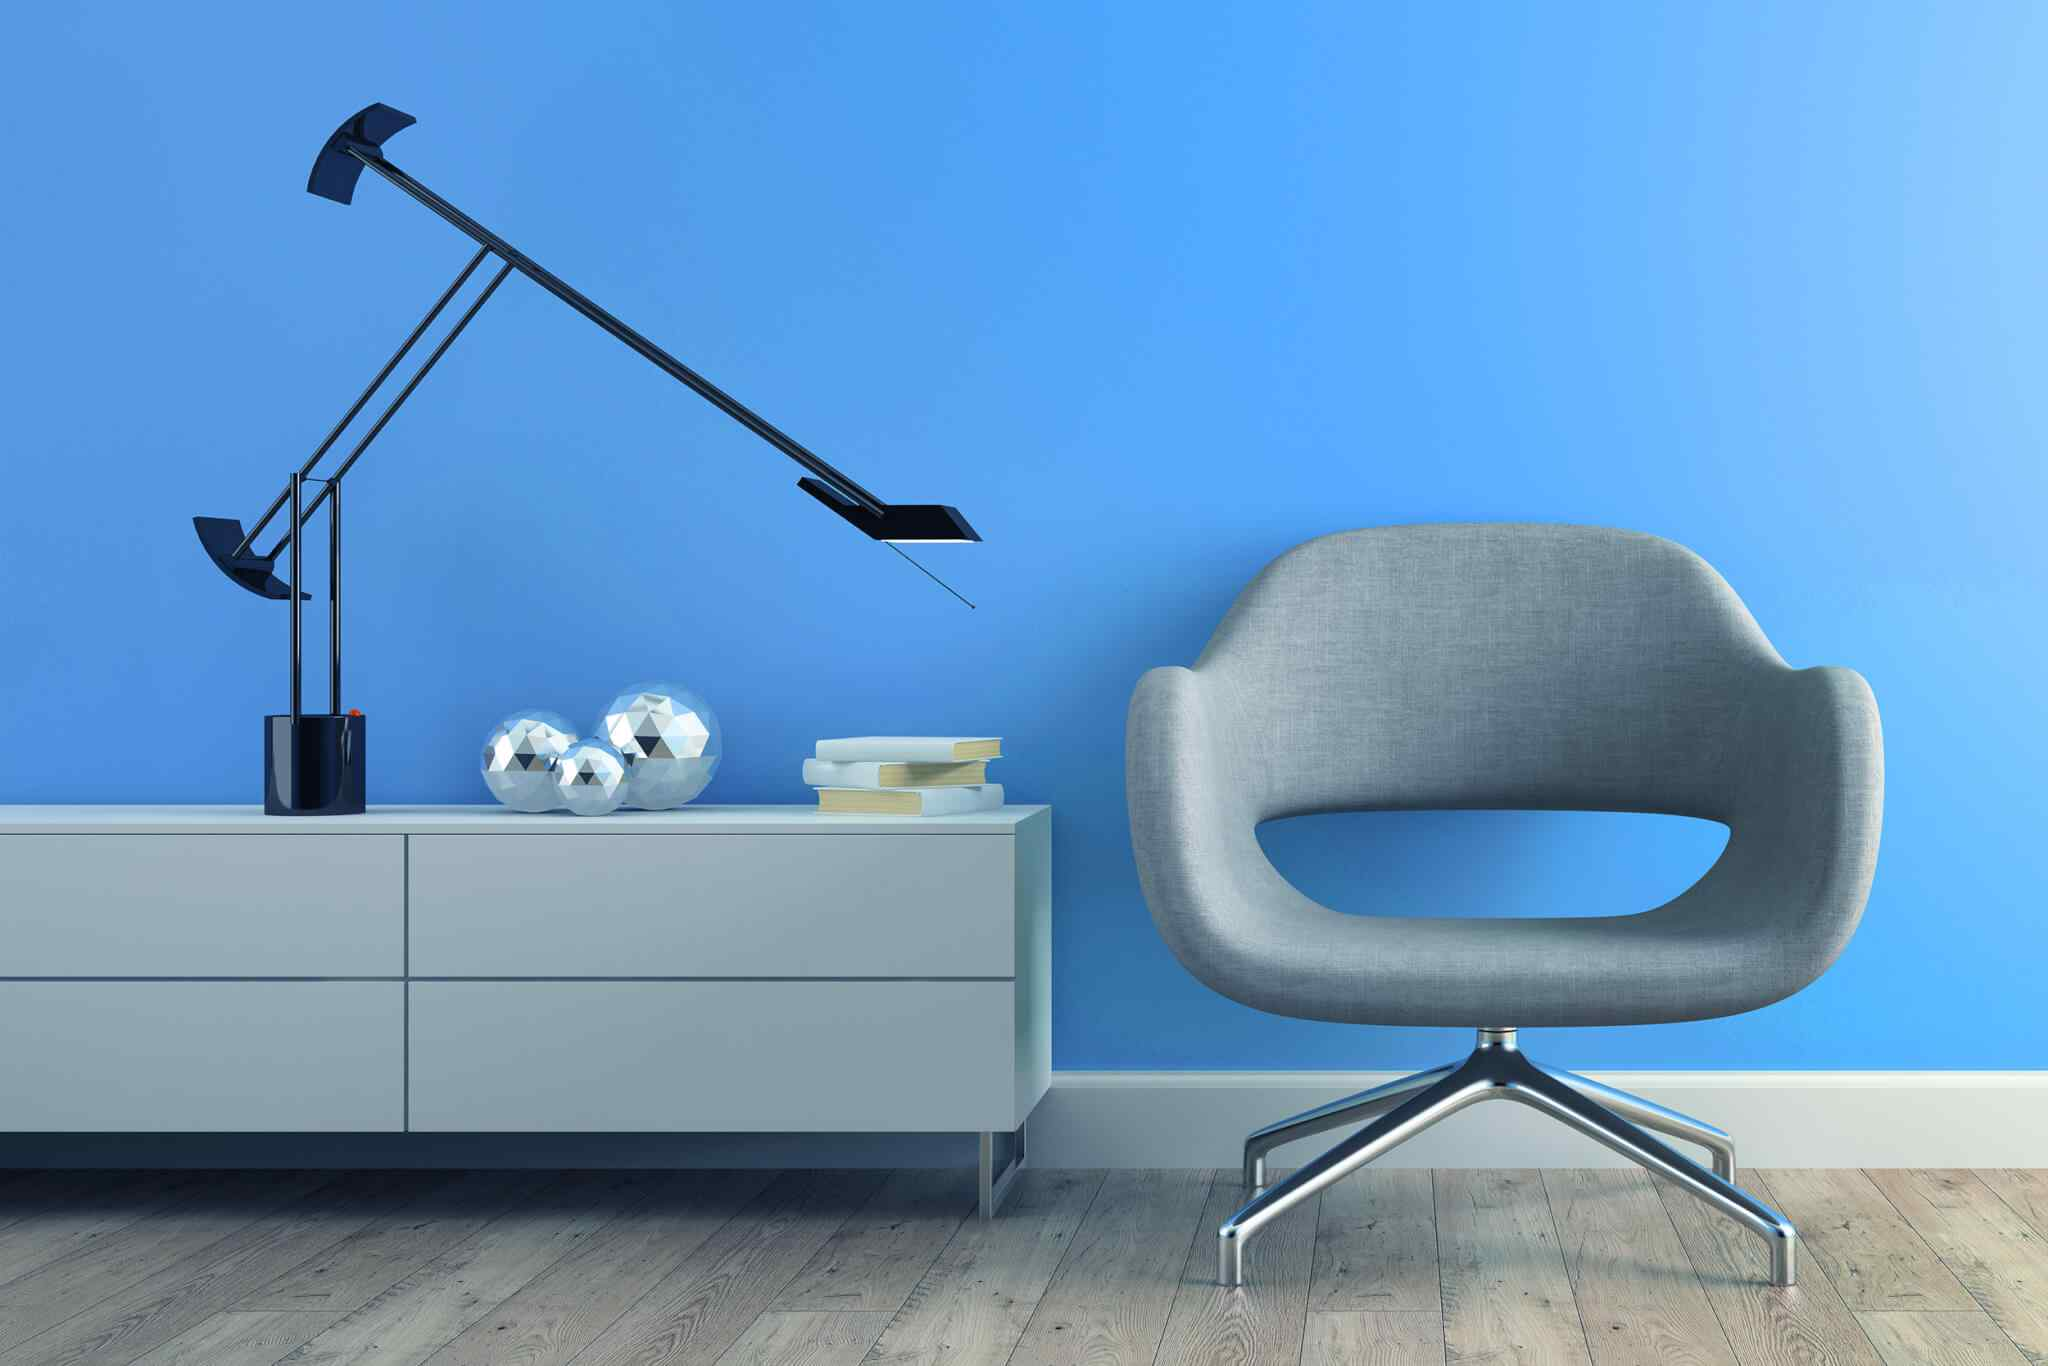 https://noxprofessional.com/wp-content/uploads/2017/05/image-chair-blue-wall.jpg